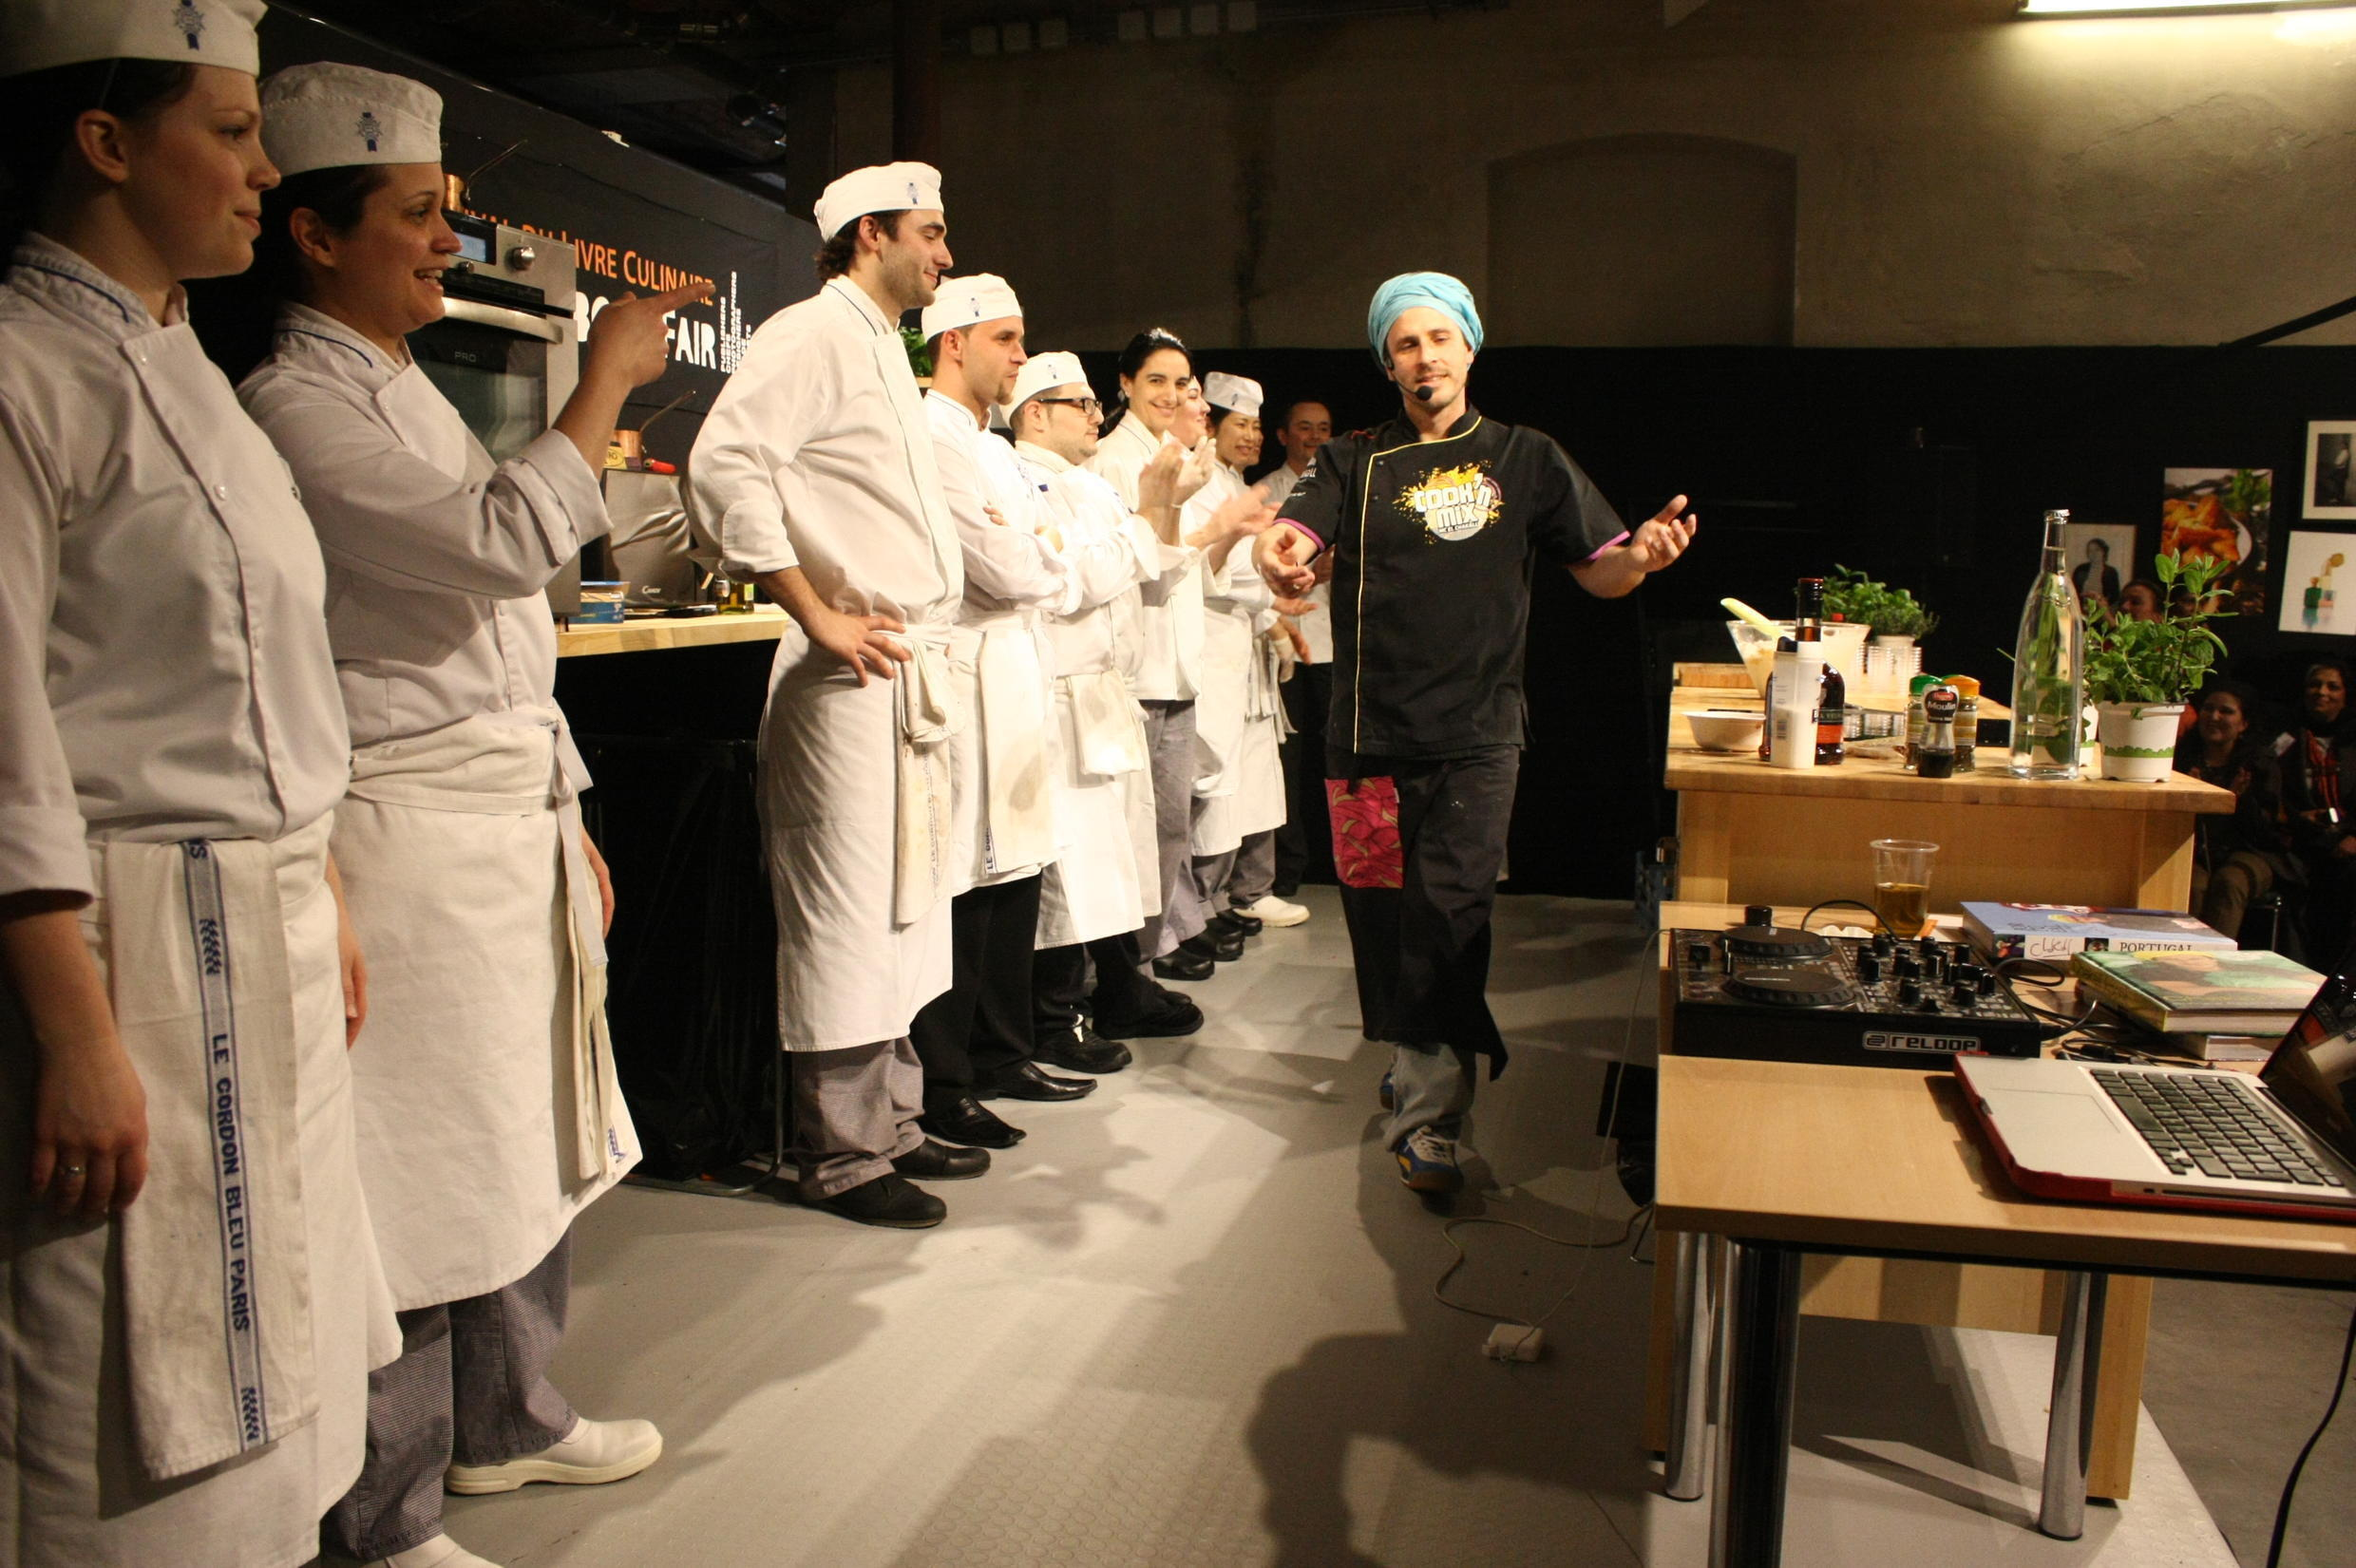 A chef gives a demonstration at the cookbook festival in Paris